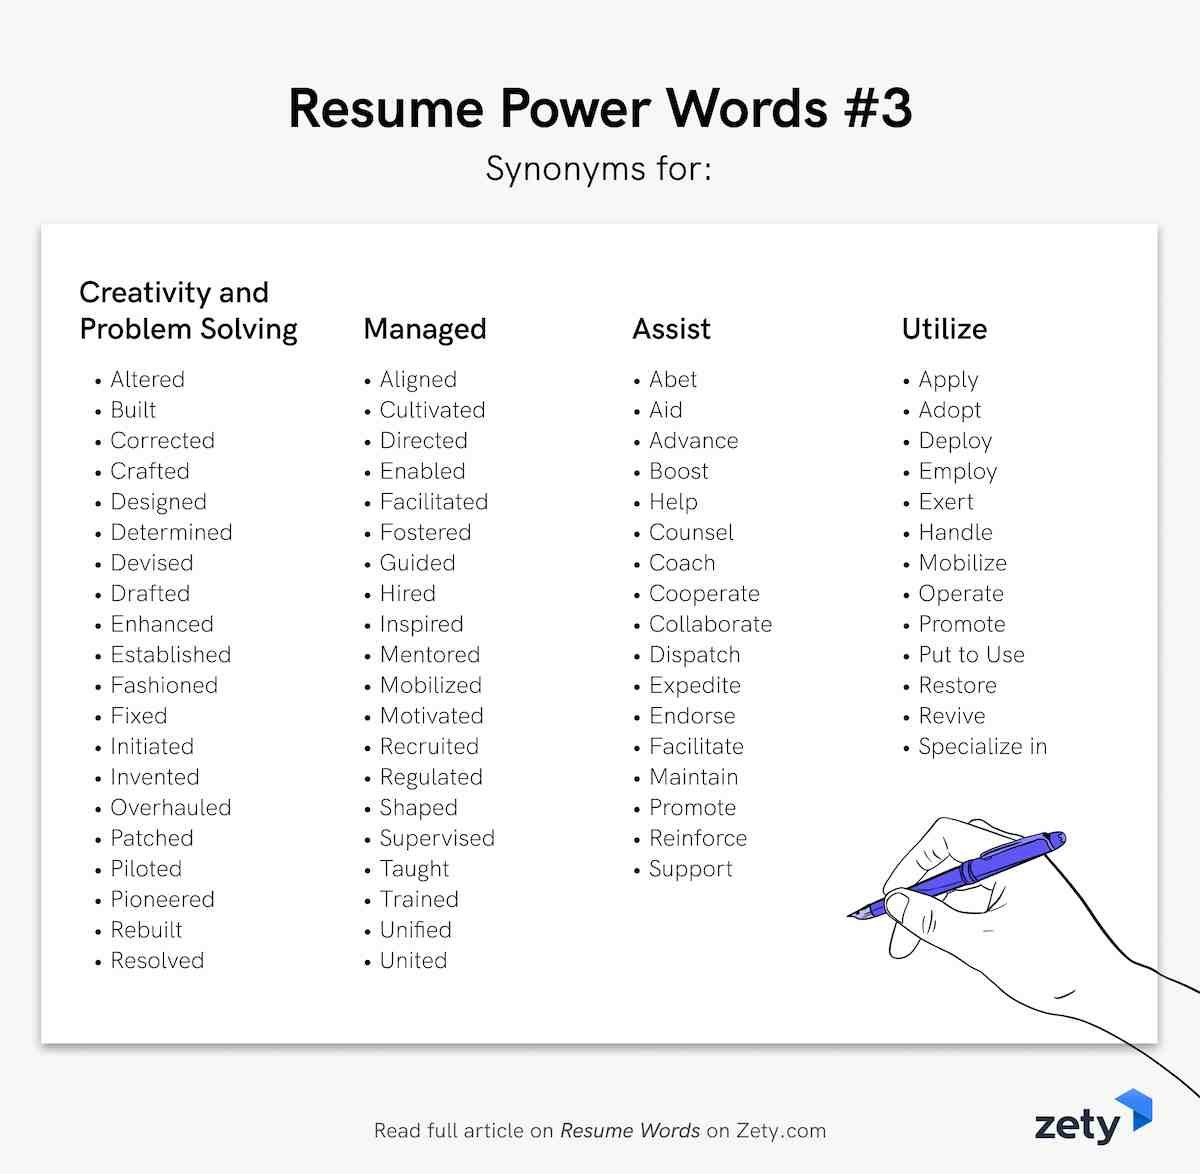 Power Words For Cover Letter from cdn-images.zety.com